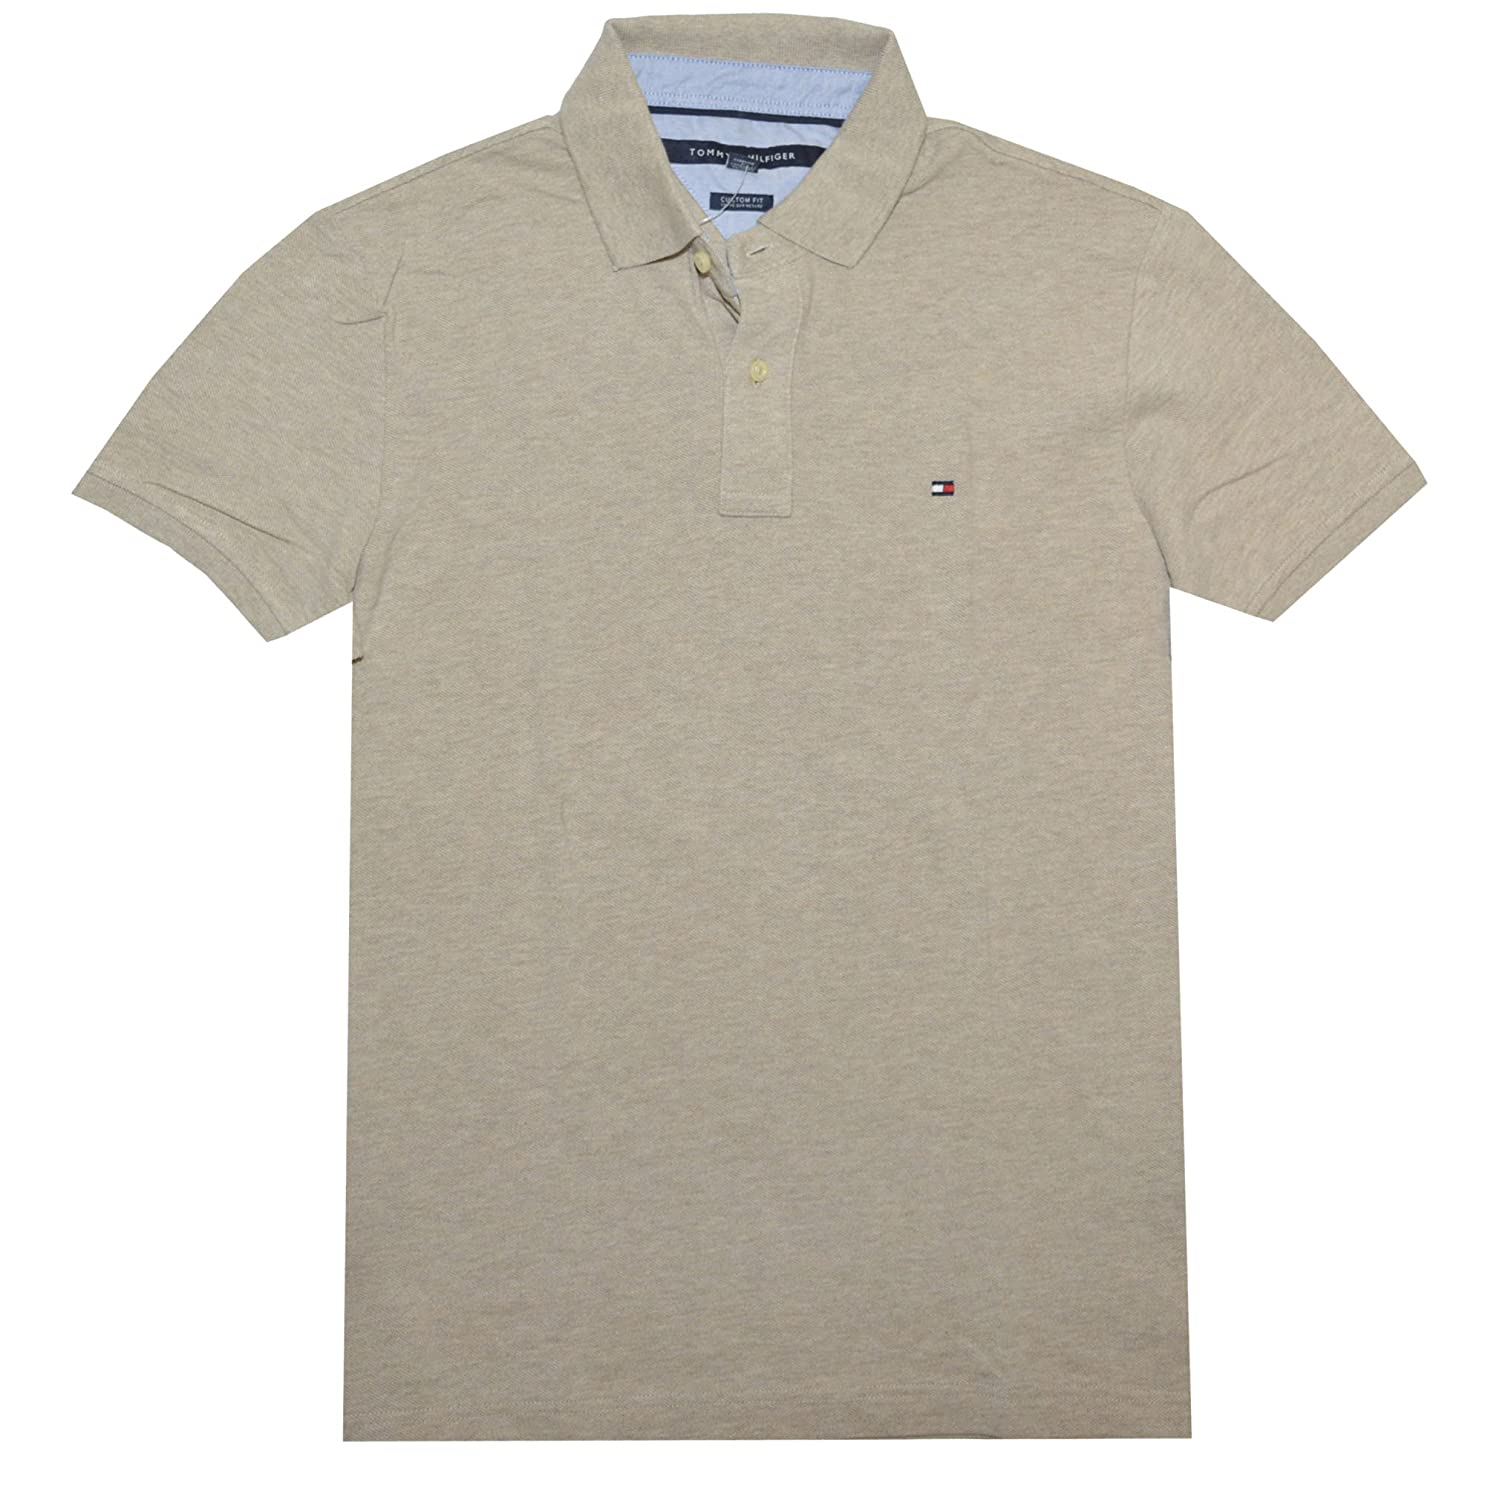 Tommy Hilfiger Men Custom Fit Polo T-shirt (XXL, Beige): Amazon.es ...